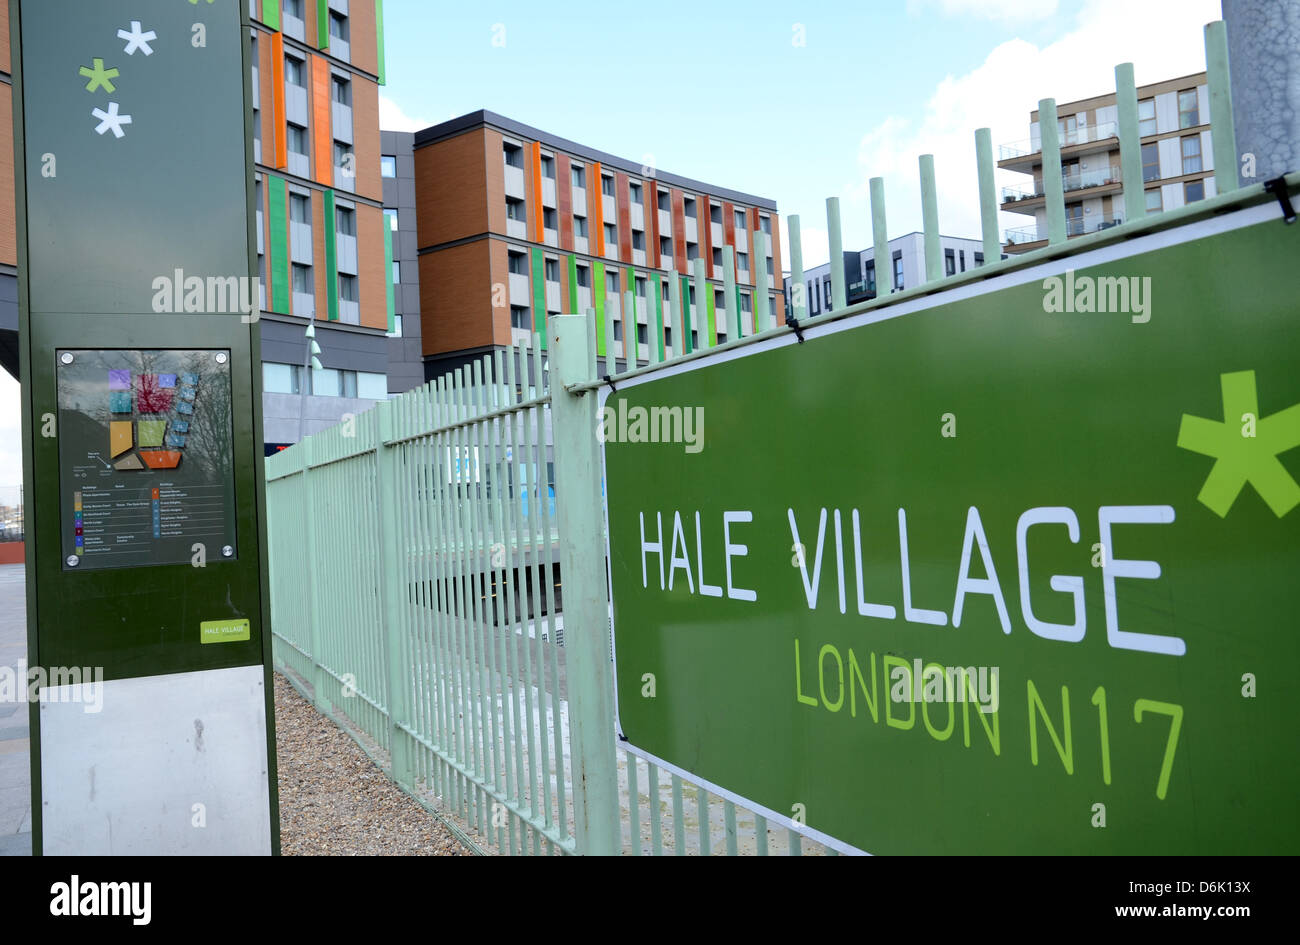 The new Bellway development of Hale Village at Tottenham Hale in north London - Stock Image